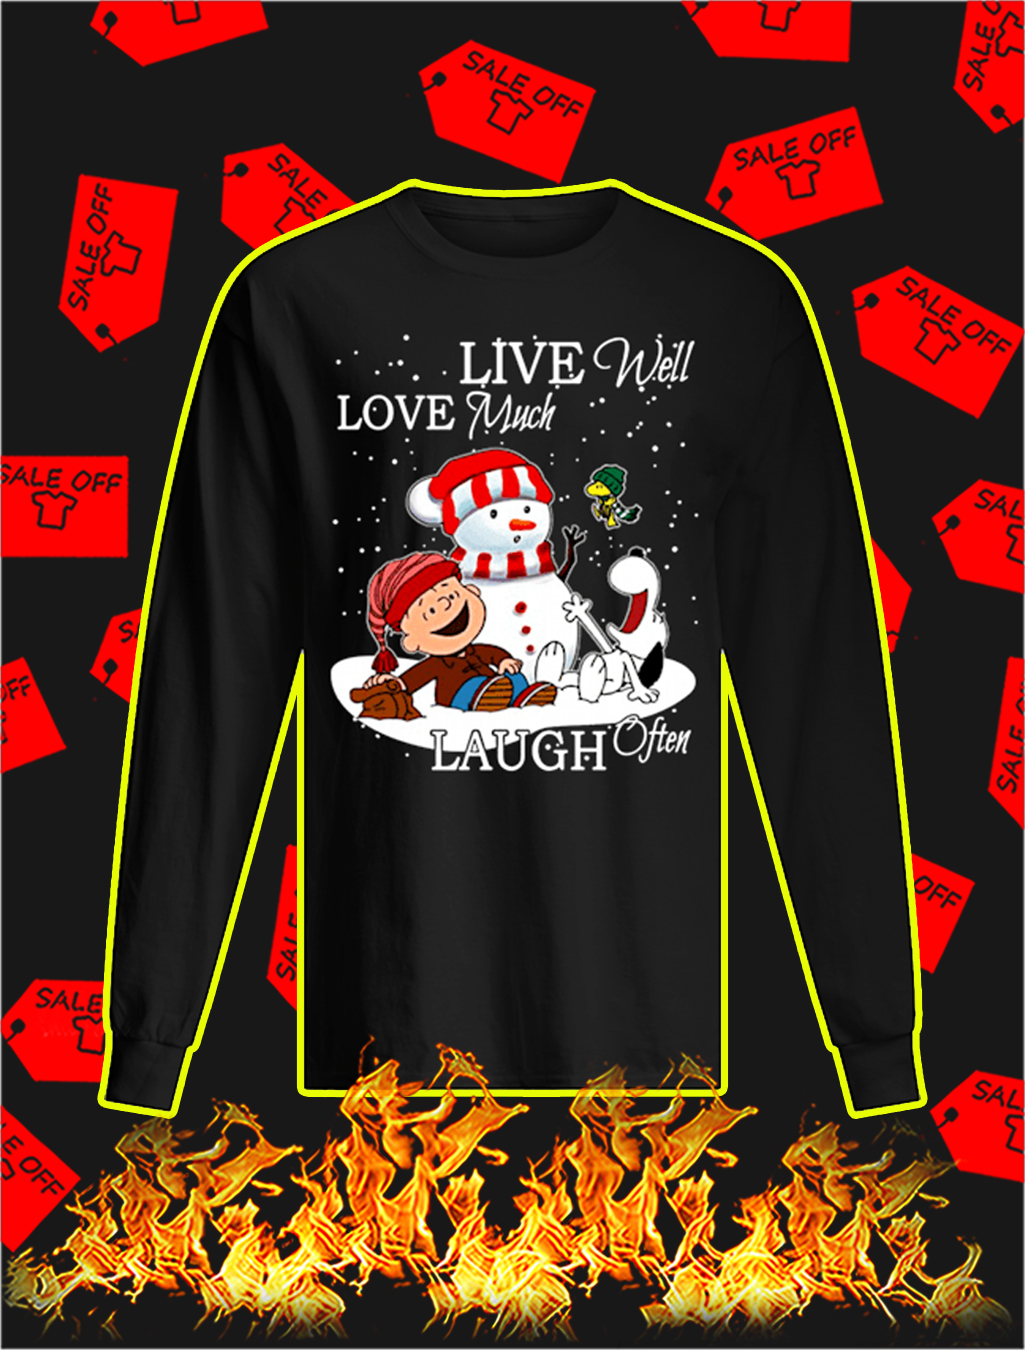 Peanuts Live Well Love Much Laugh Often Christmas longsleeve tee